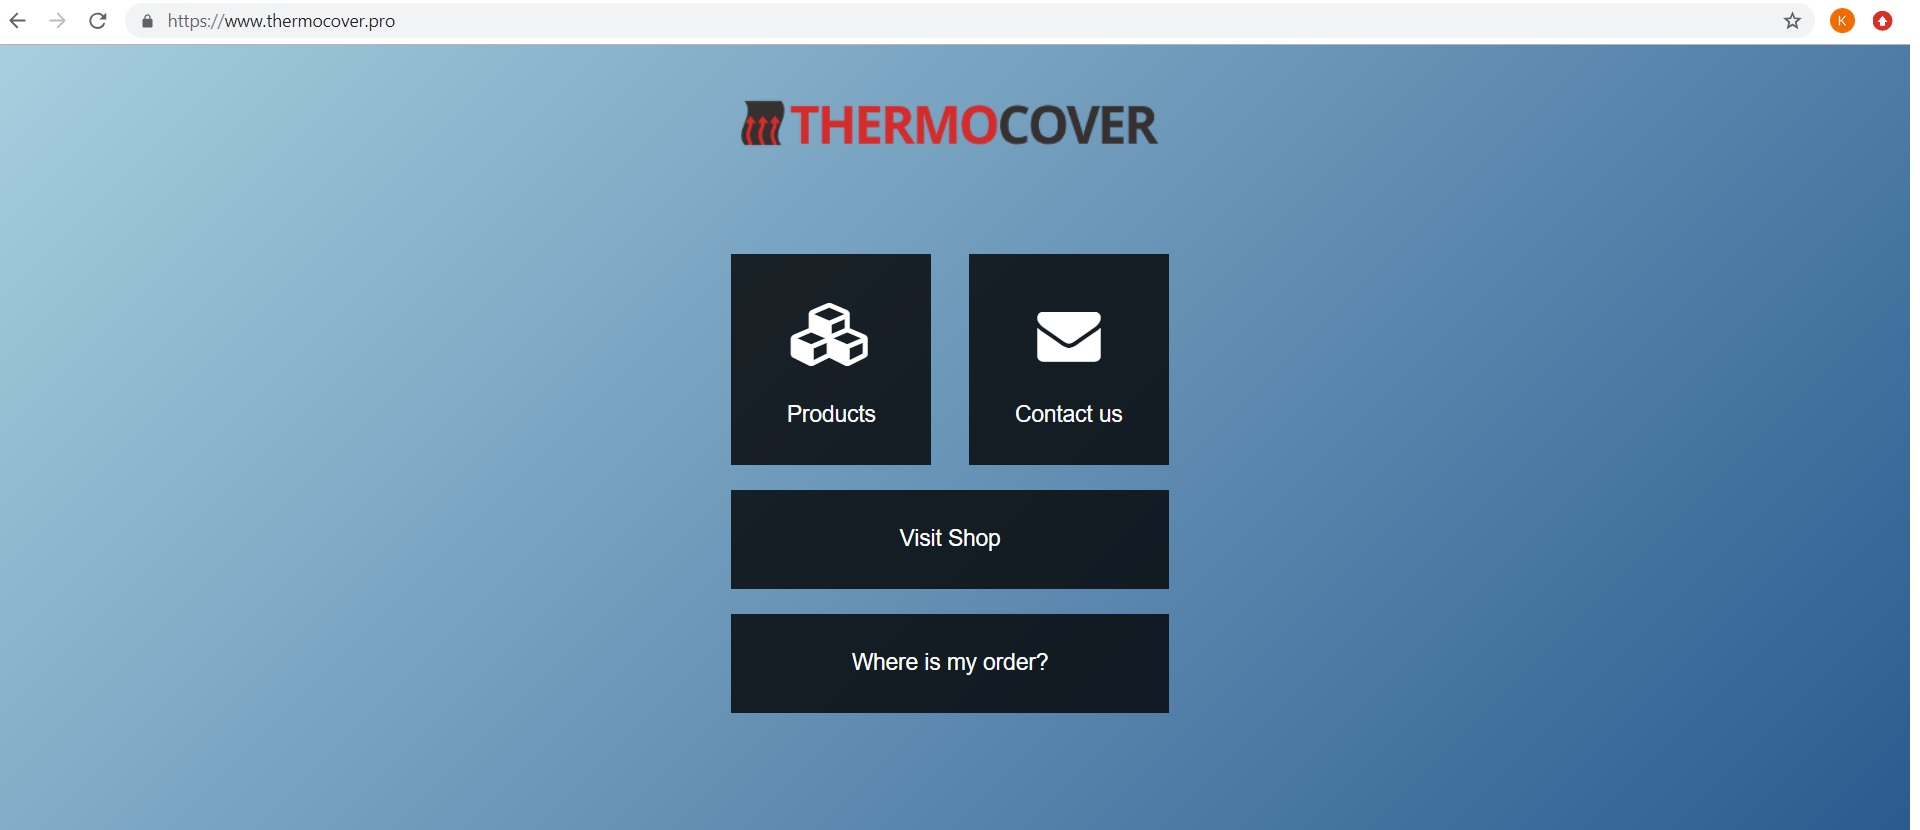 thermocover.pro